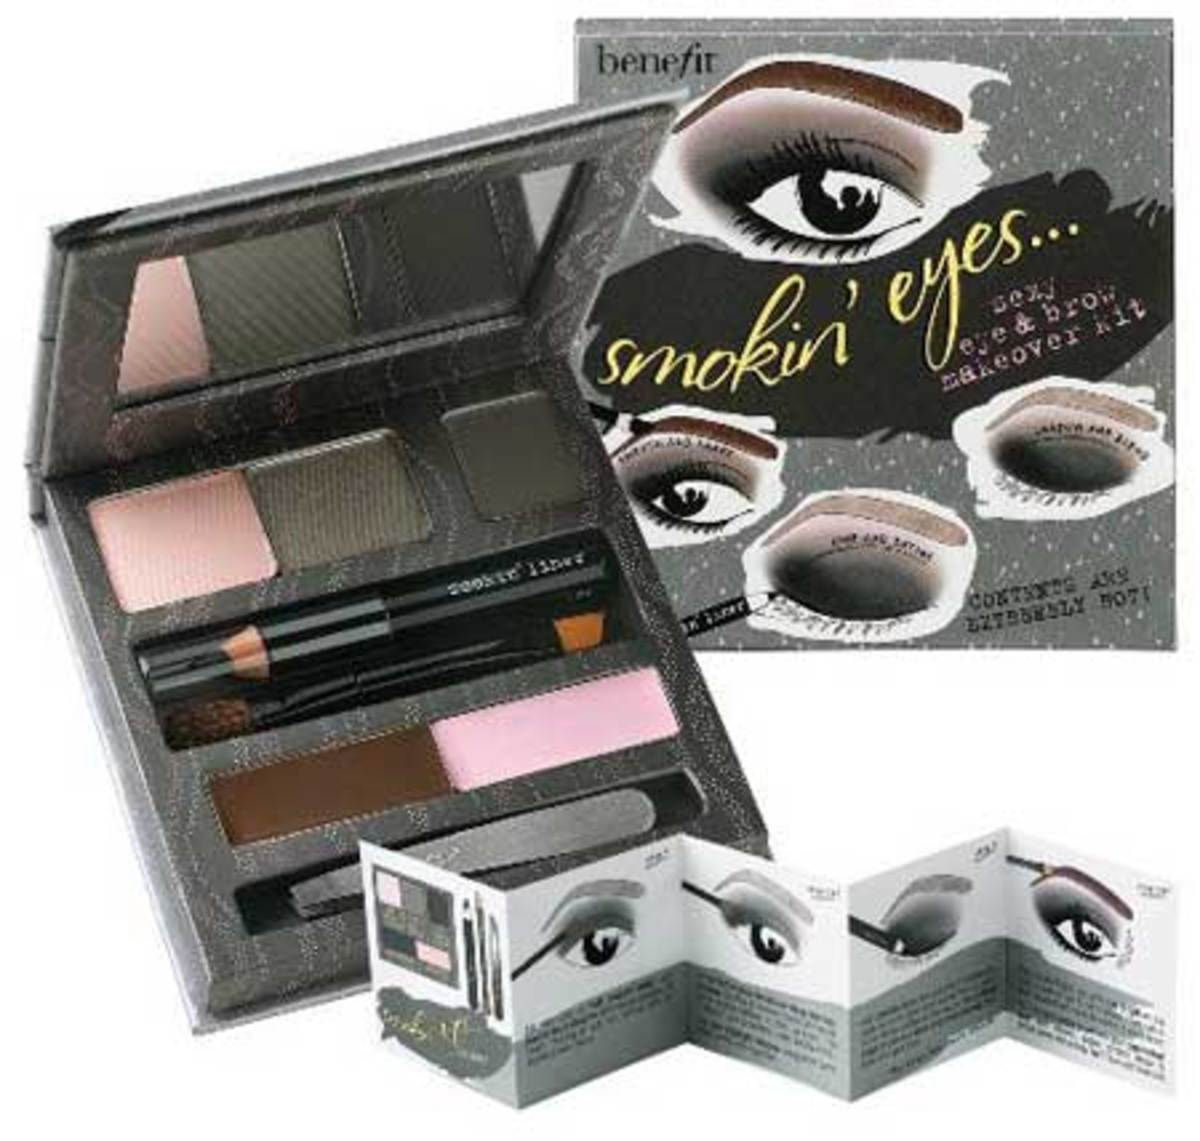 new-products-benefit-smokin-eyes-0509